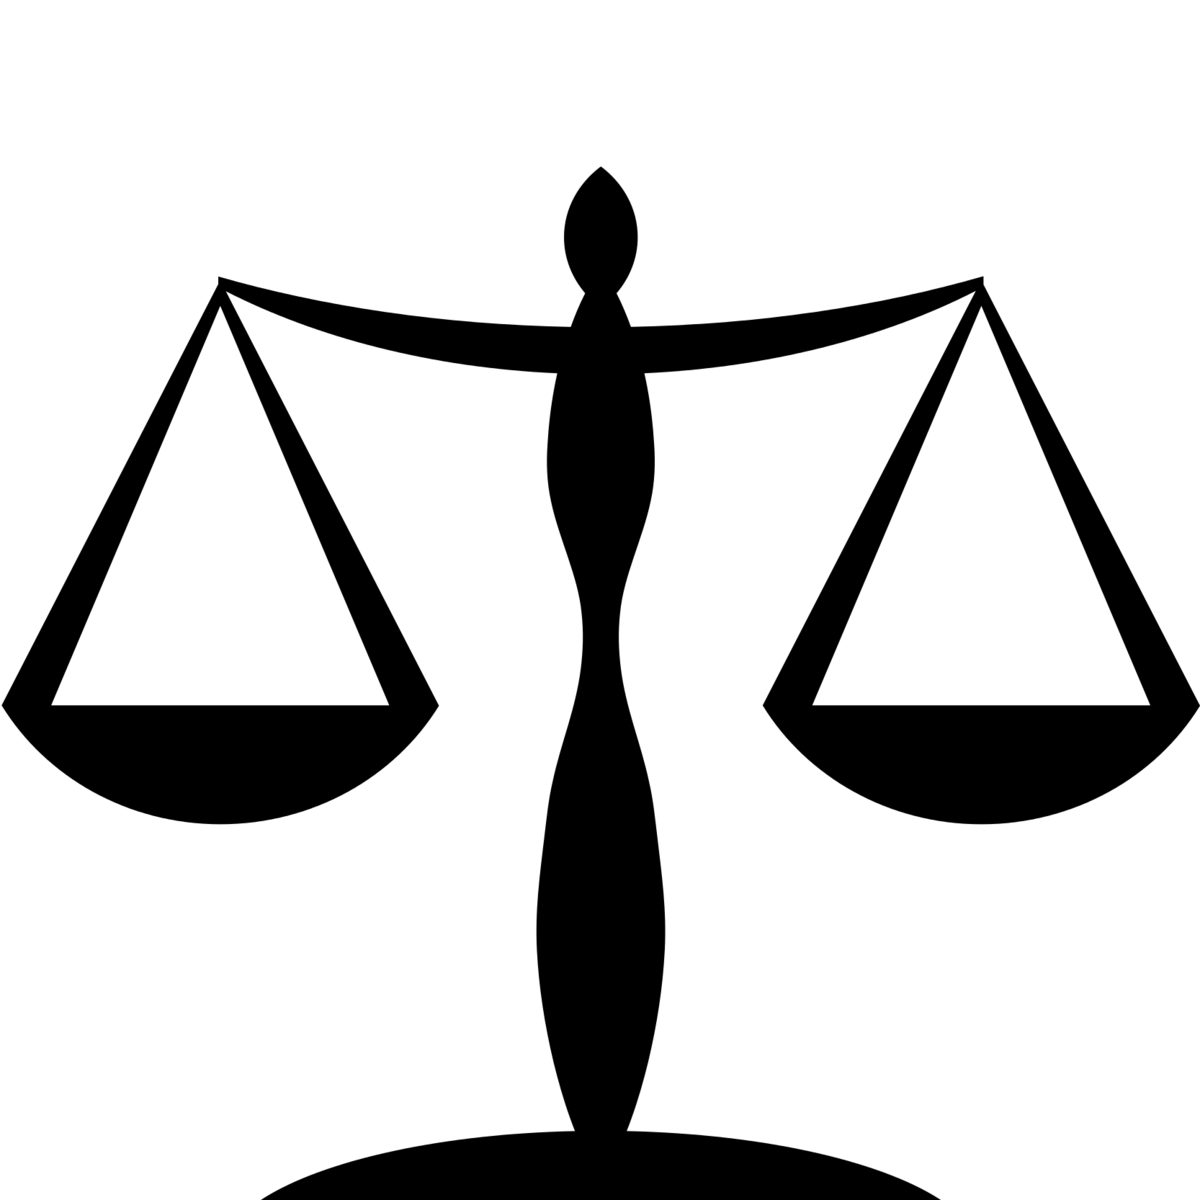 Law Clipart Balance Scale Law Balance Scale Transparent